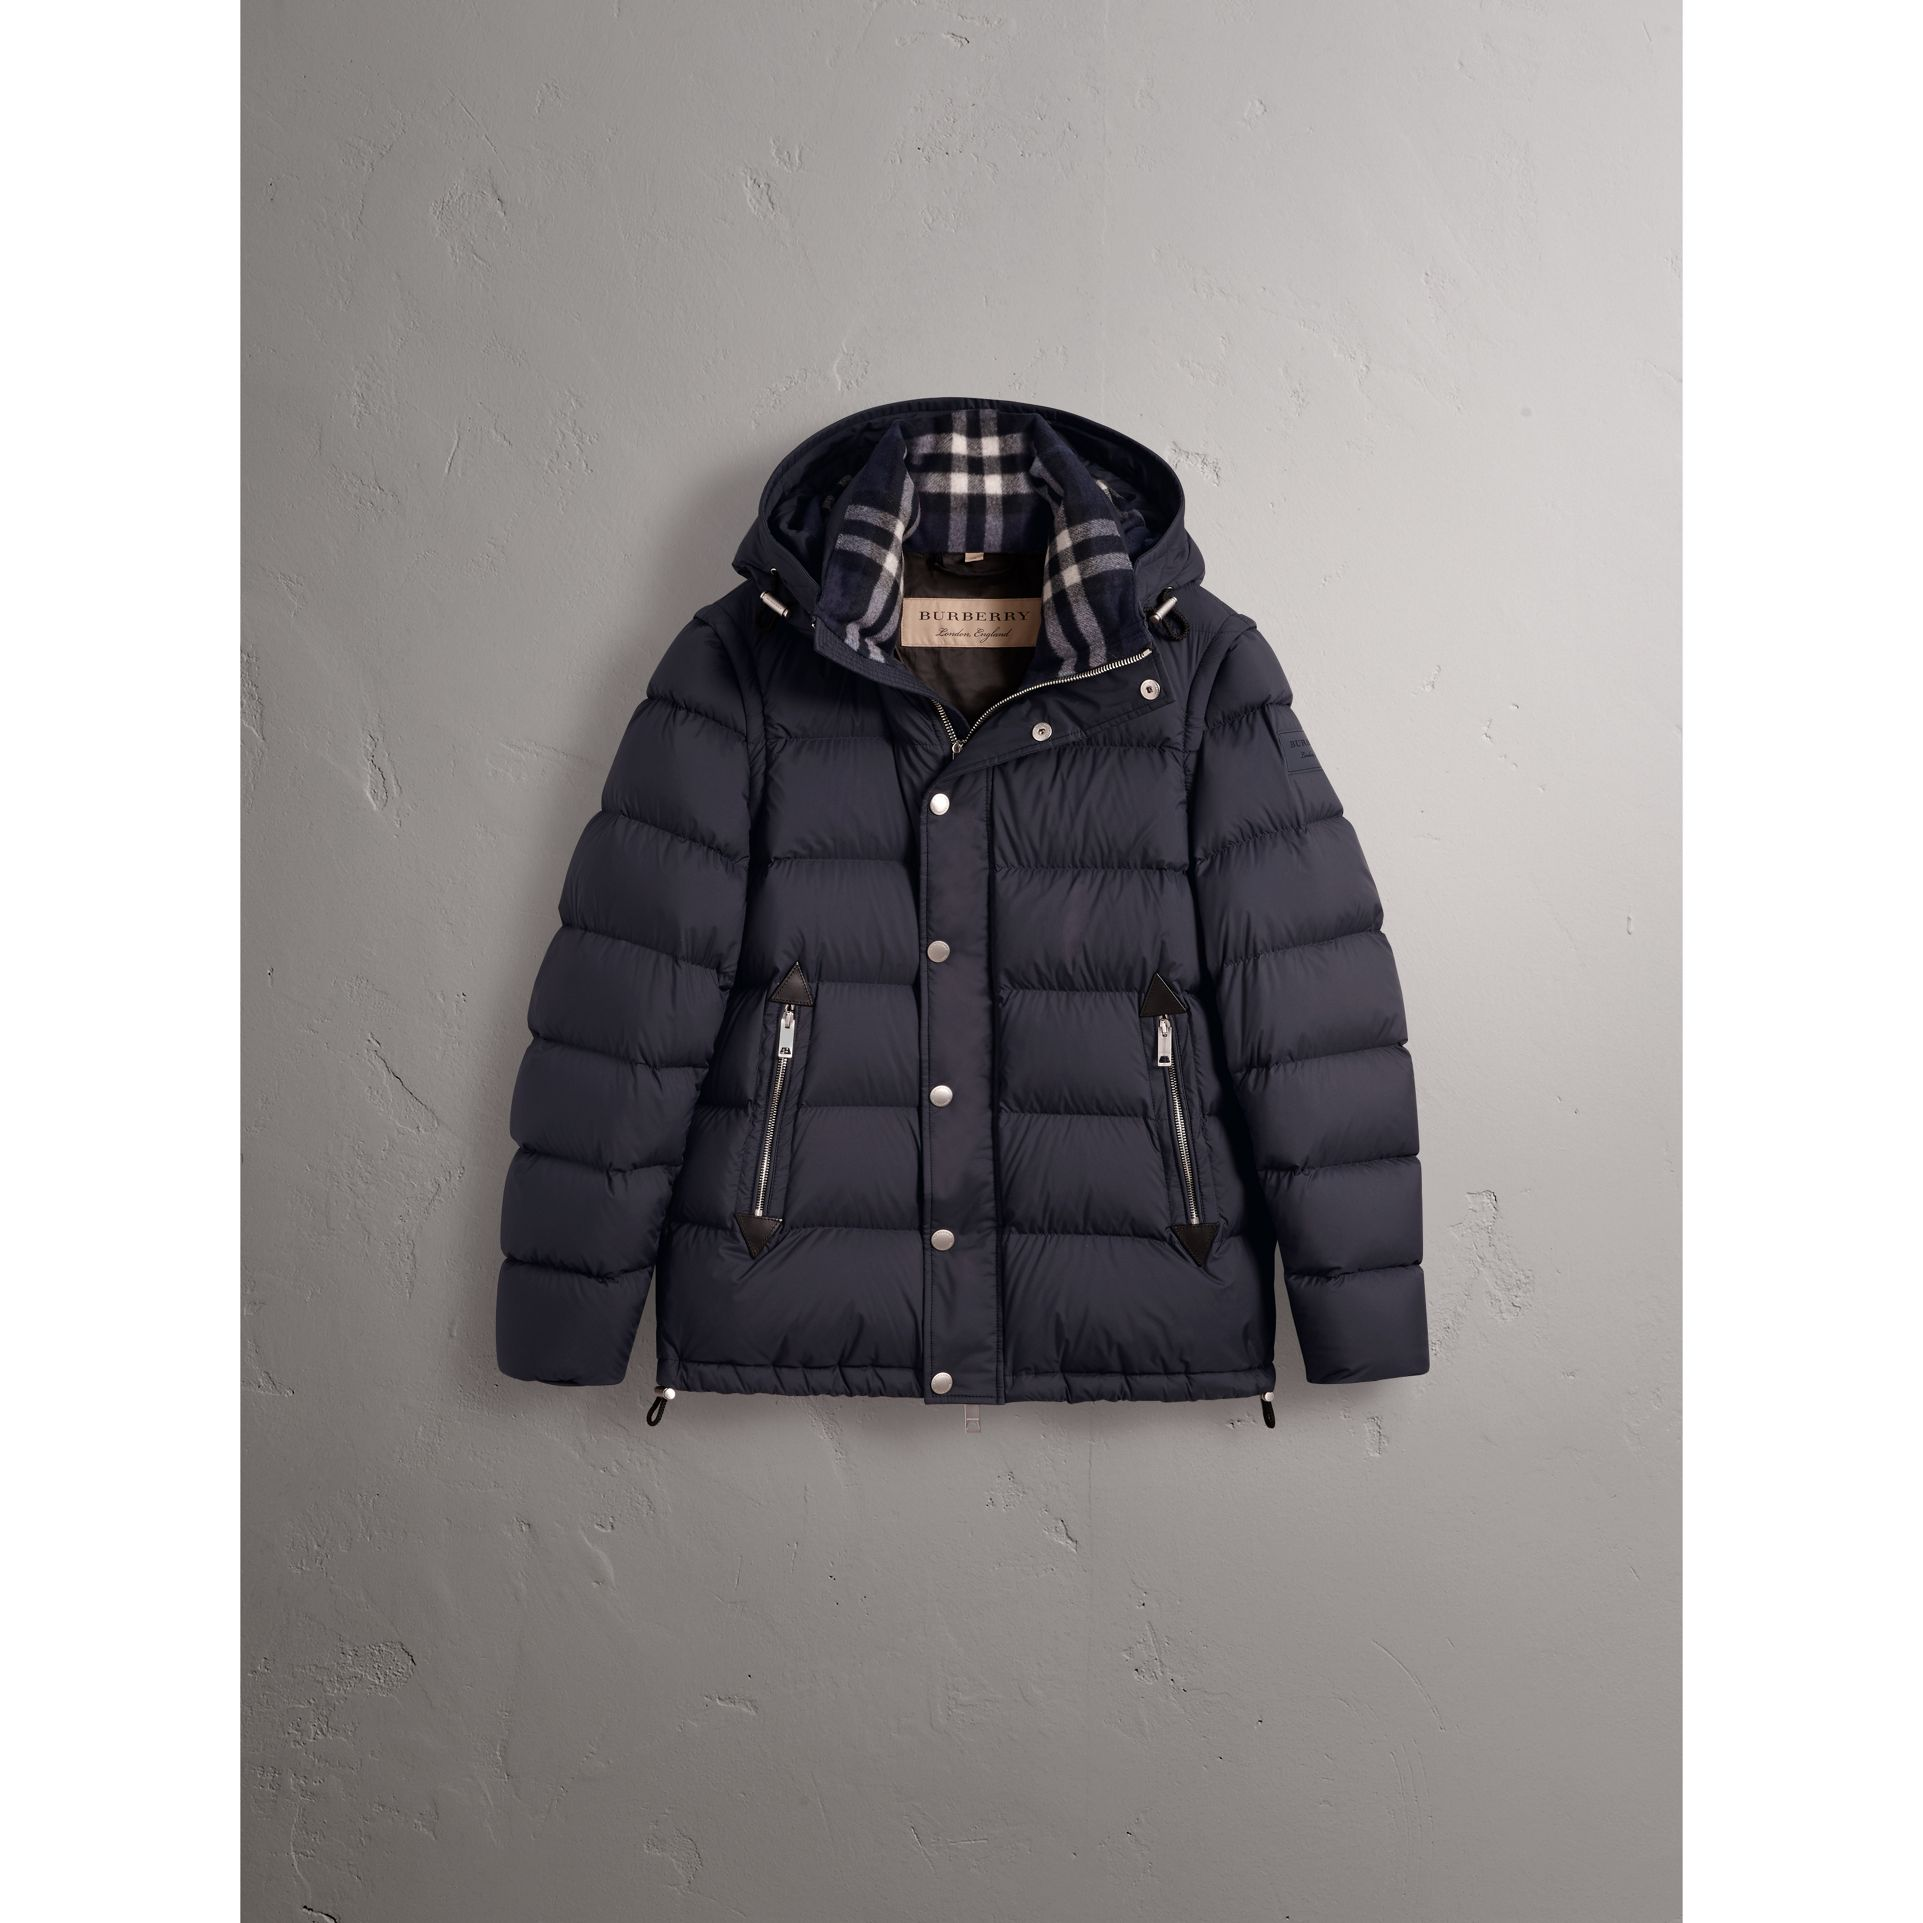 60df90566 Moncler Empire K2 Panelled Quilted Shell Down Jacket ($1,715 ...